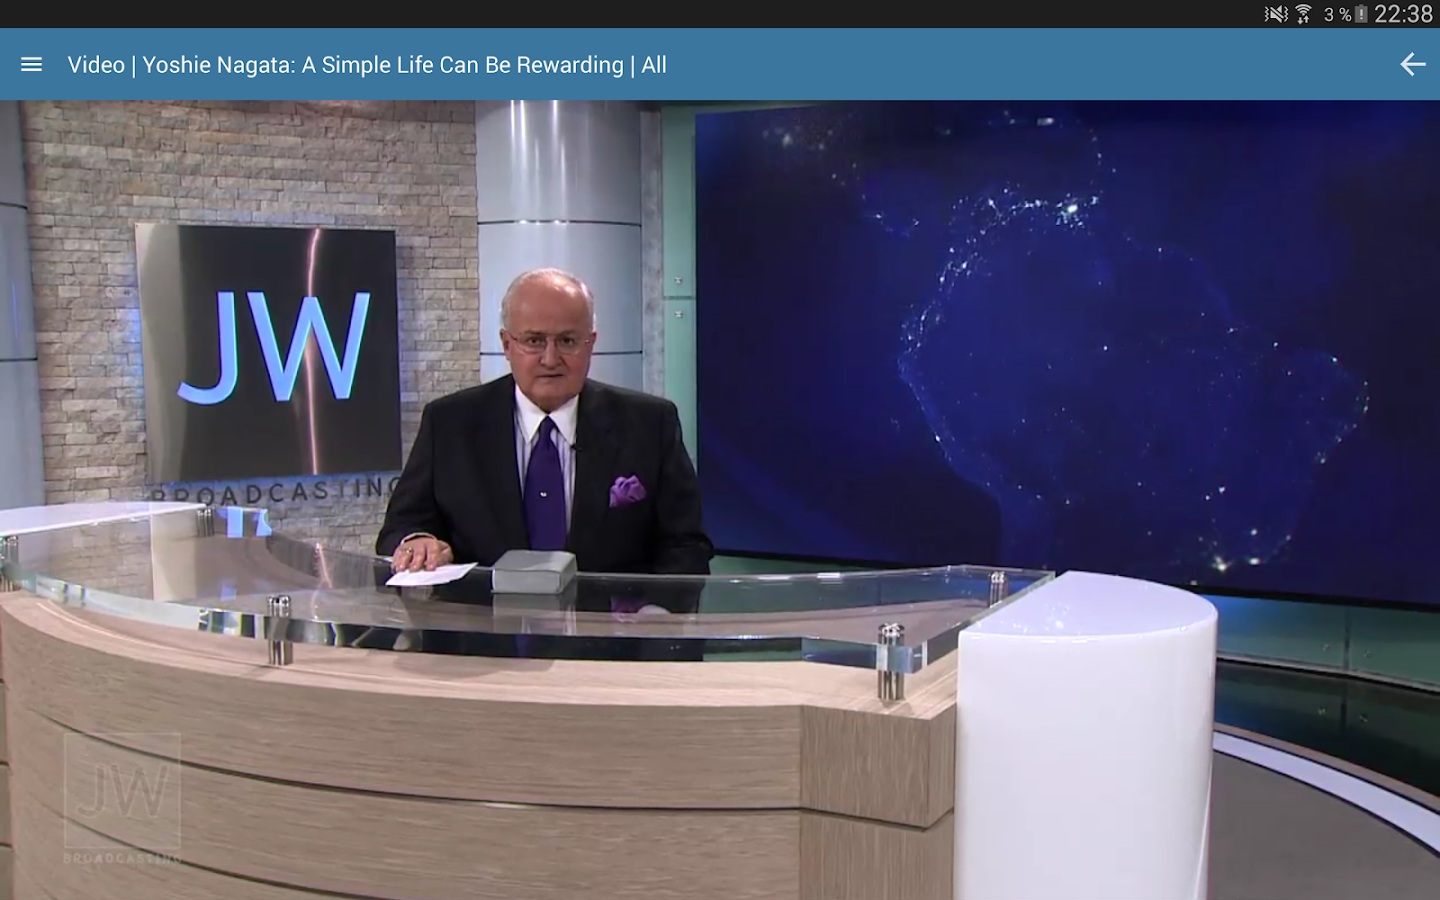 Jw Broadcasting Amp News Android Apps On Google Play